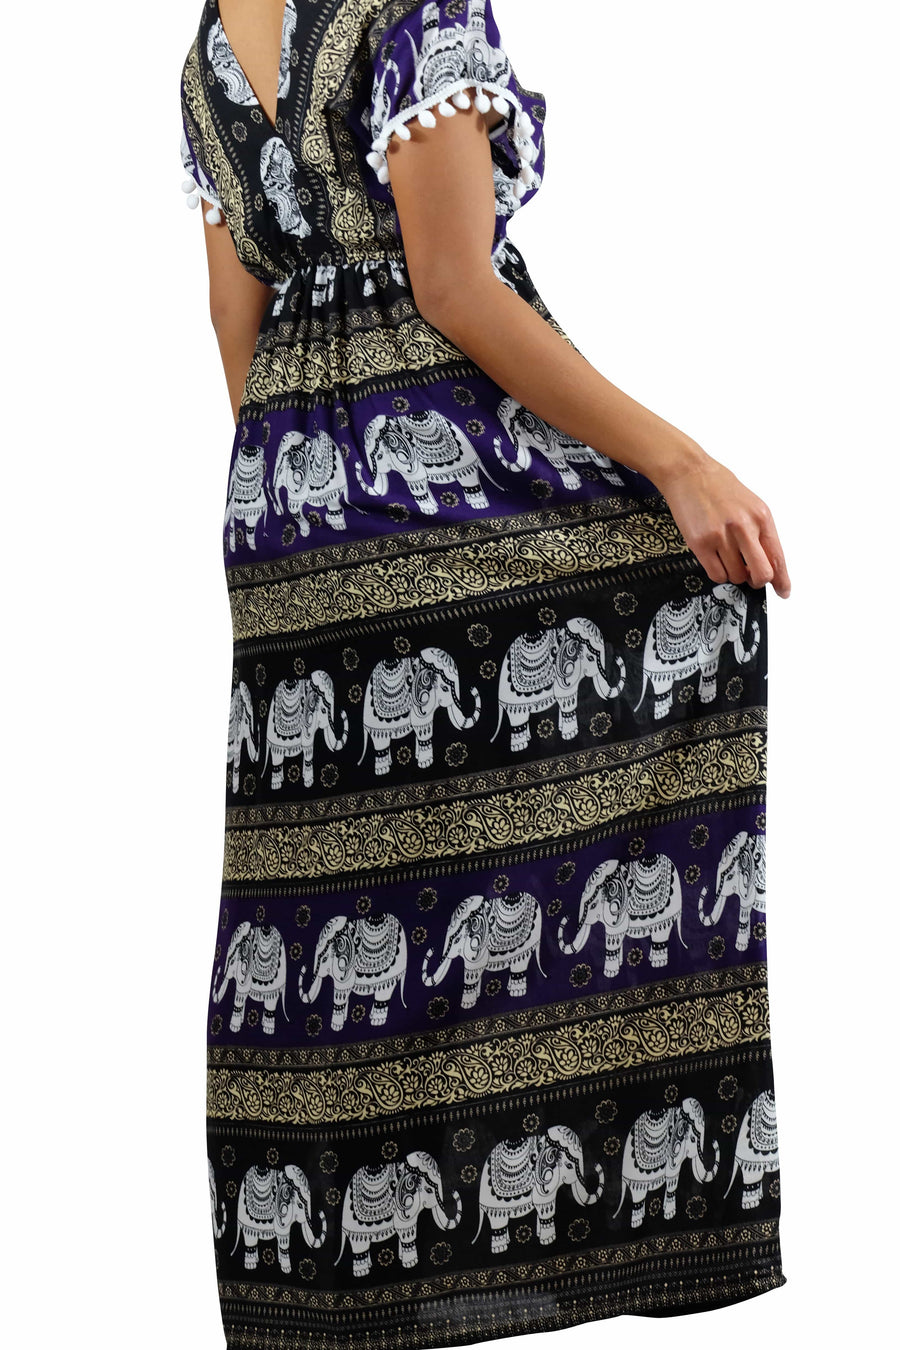 Elephant Shirt Store Dress Chang Colorful Bohemian Style Purple